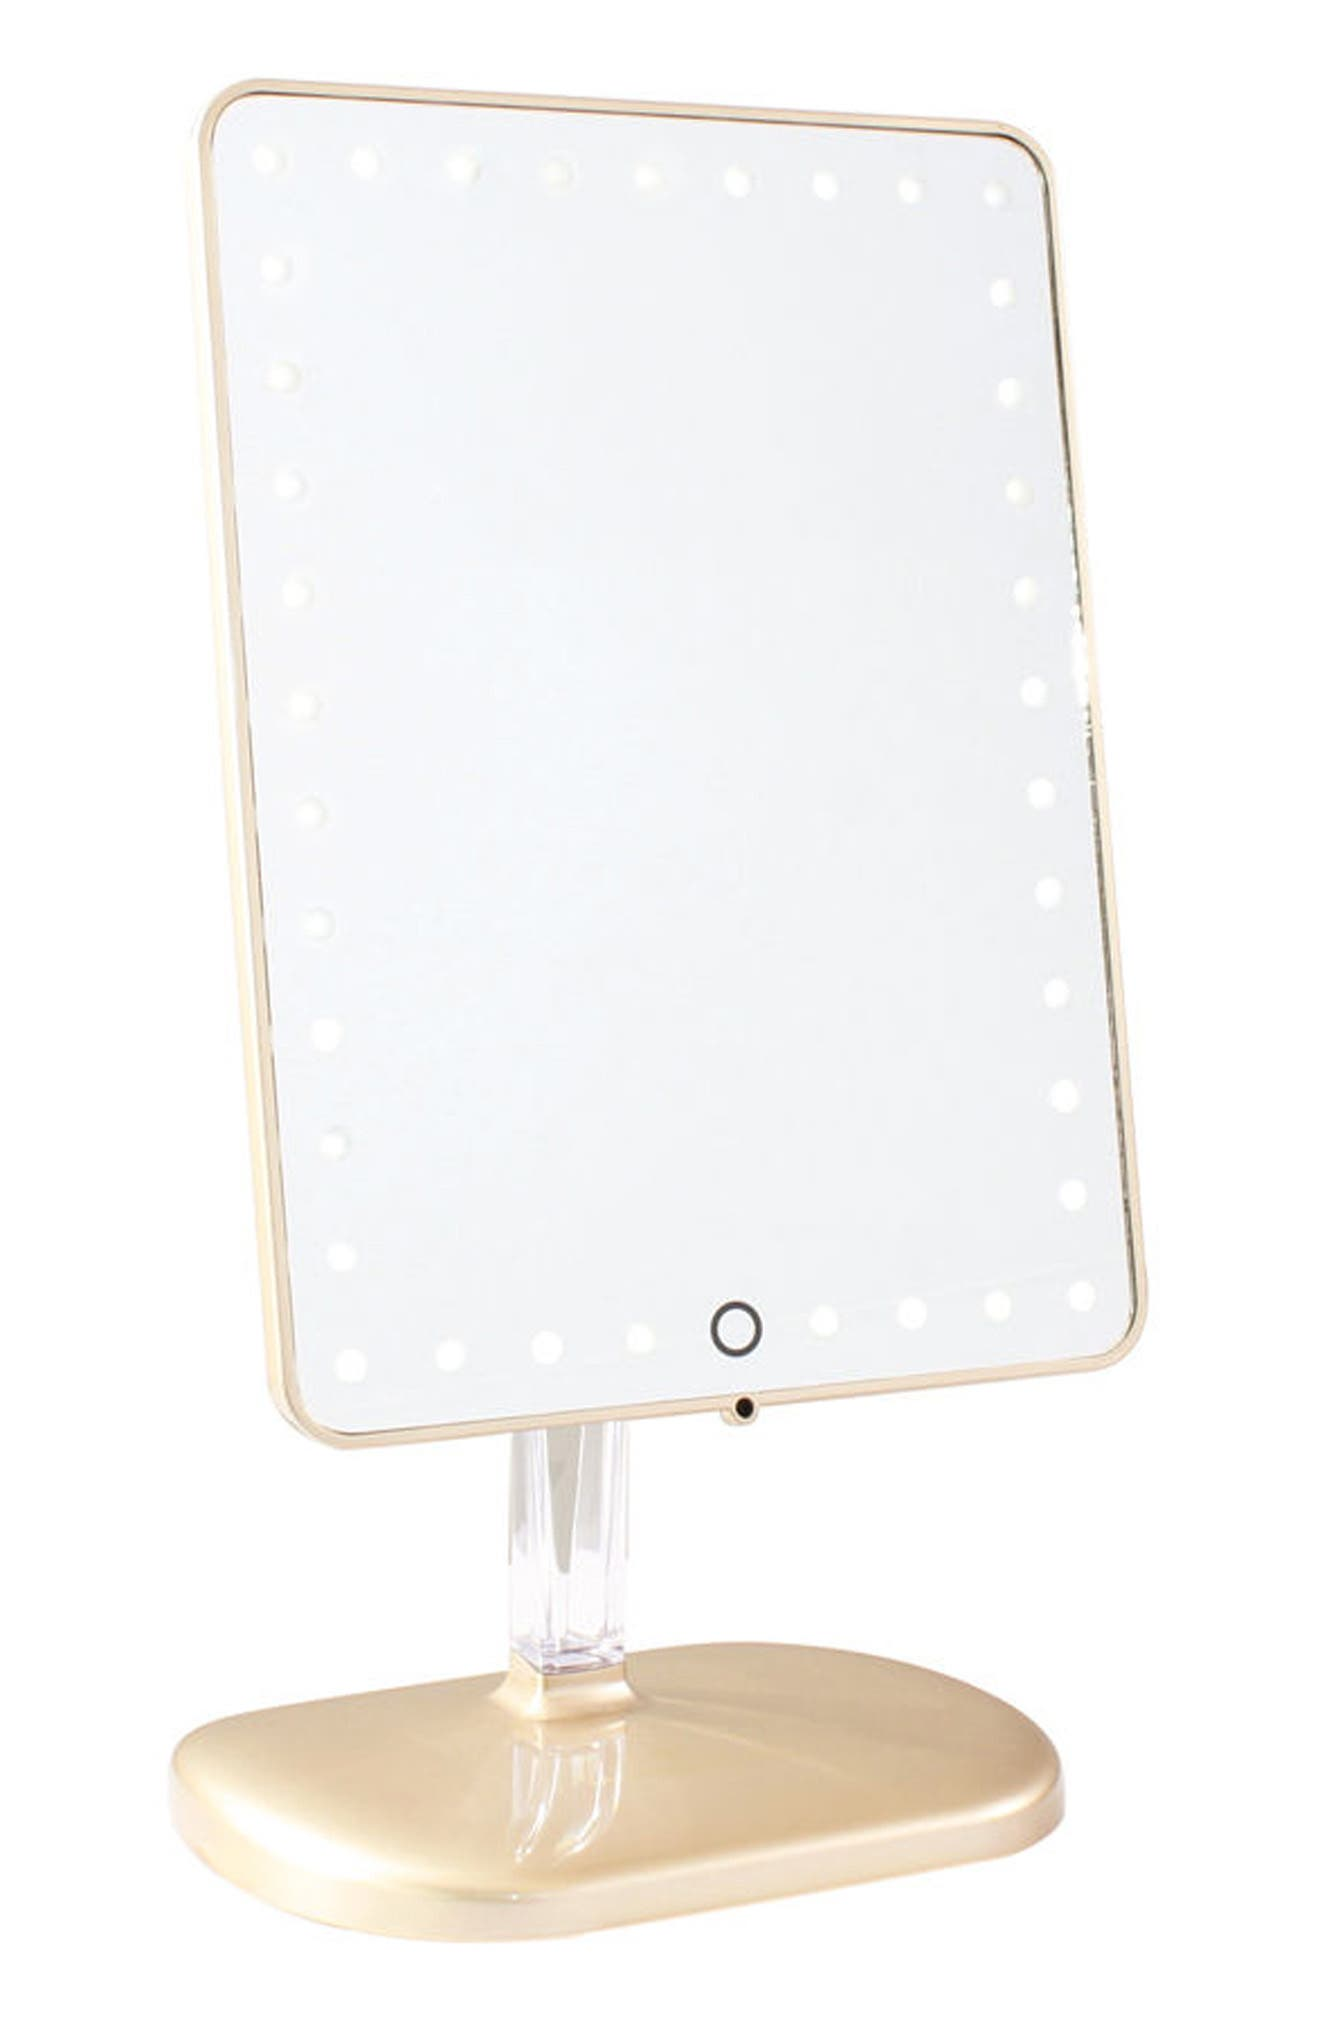 Bling Touch Pro LED Makeup Mirror with Bluetooth<sup>®</sup> Audio & Speakerphone,                             Main thumbnail 1, color,                             Glossy Champagne